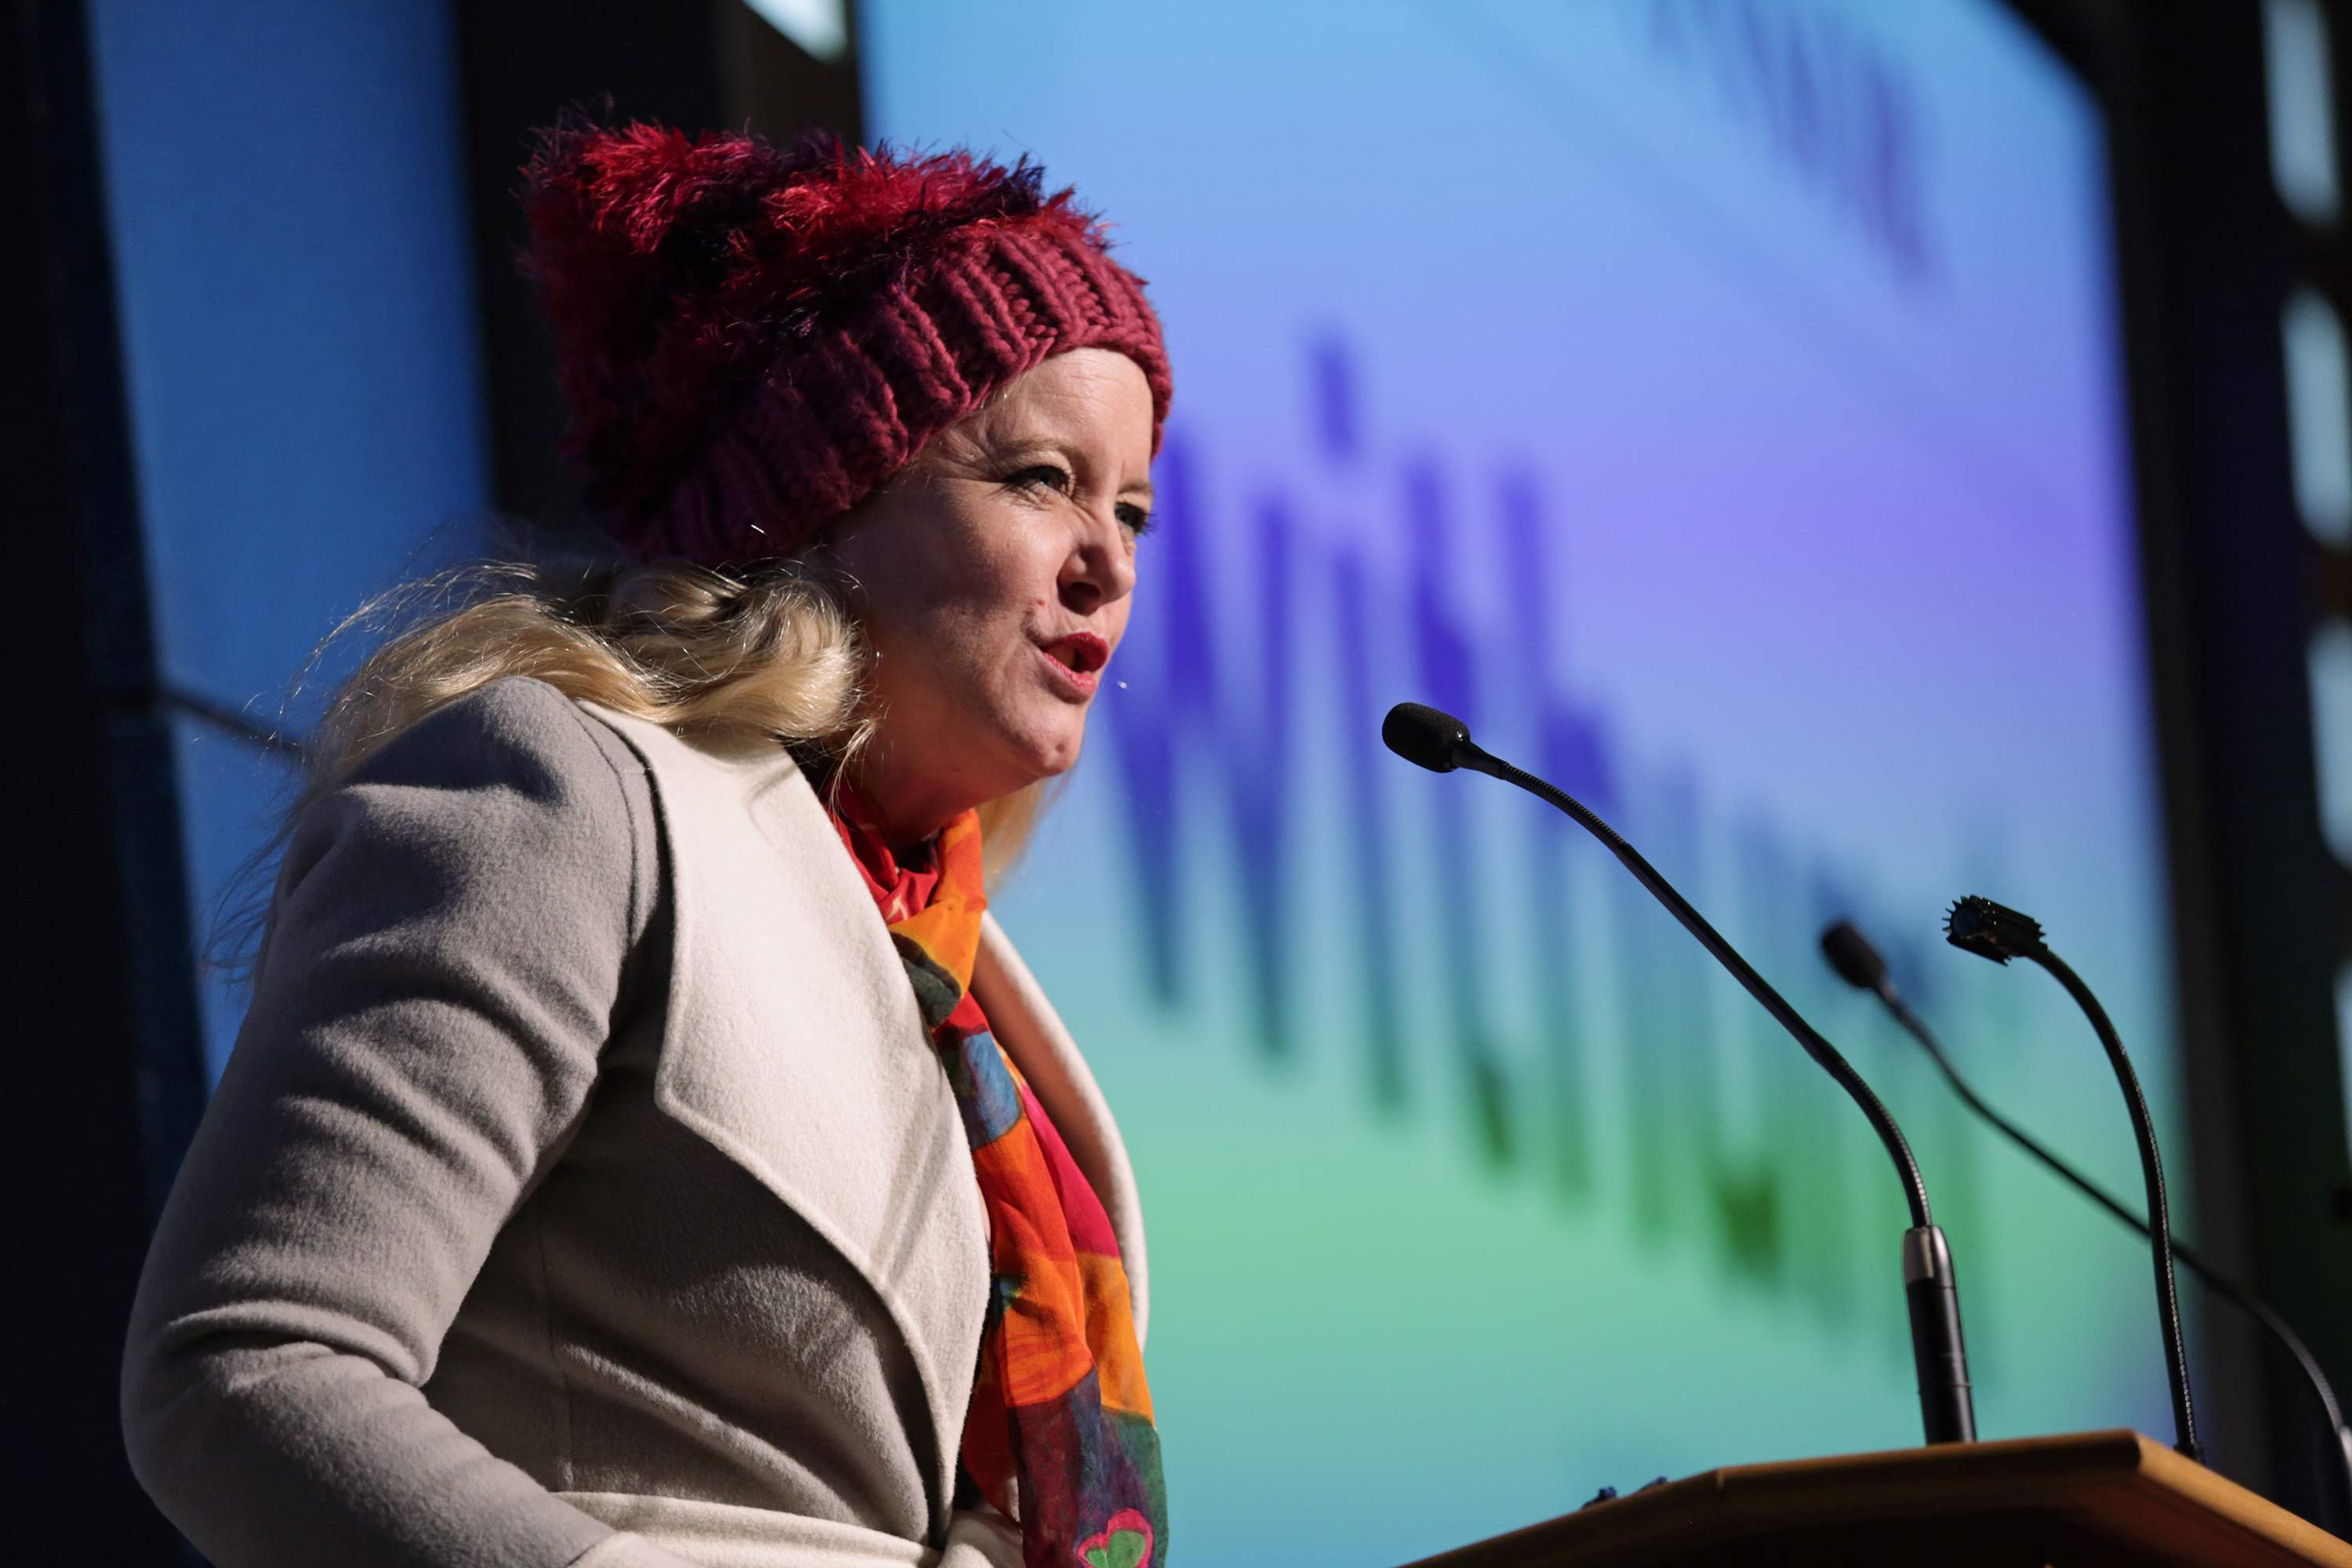 Kimberlee S. Phelan, partner and international service practice leader at WithumSmith+Brown P.C., wears the pink hat from the Women's March during Withum's sponsor remarks at the Best 50 Women in Business event.